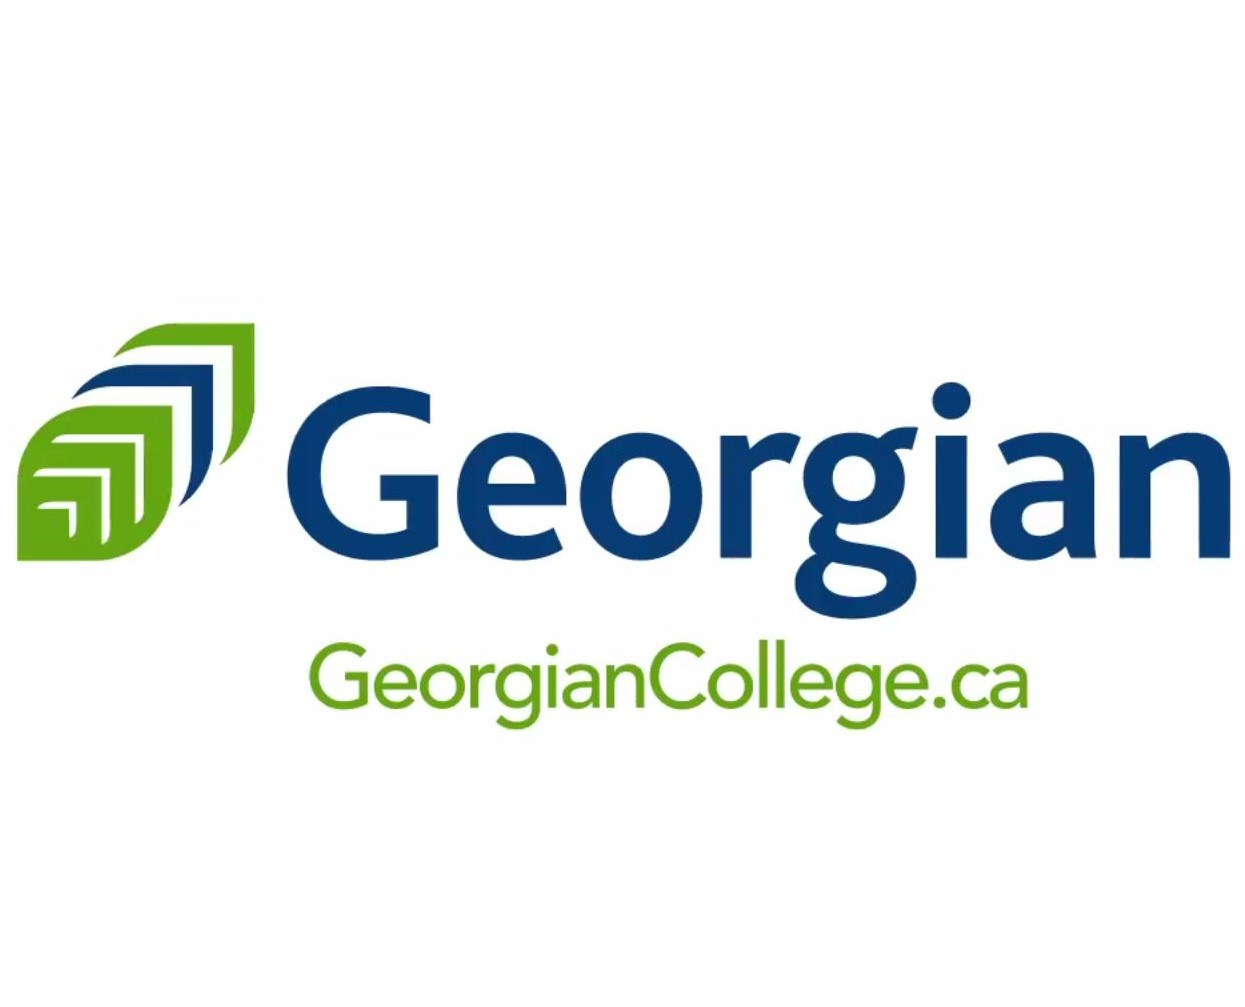 Marketing-New-brand-slider-Georgian-College-201408-1